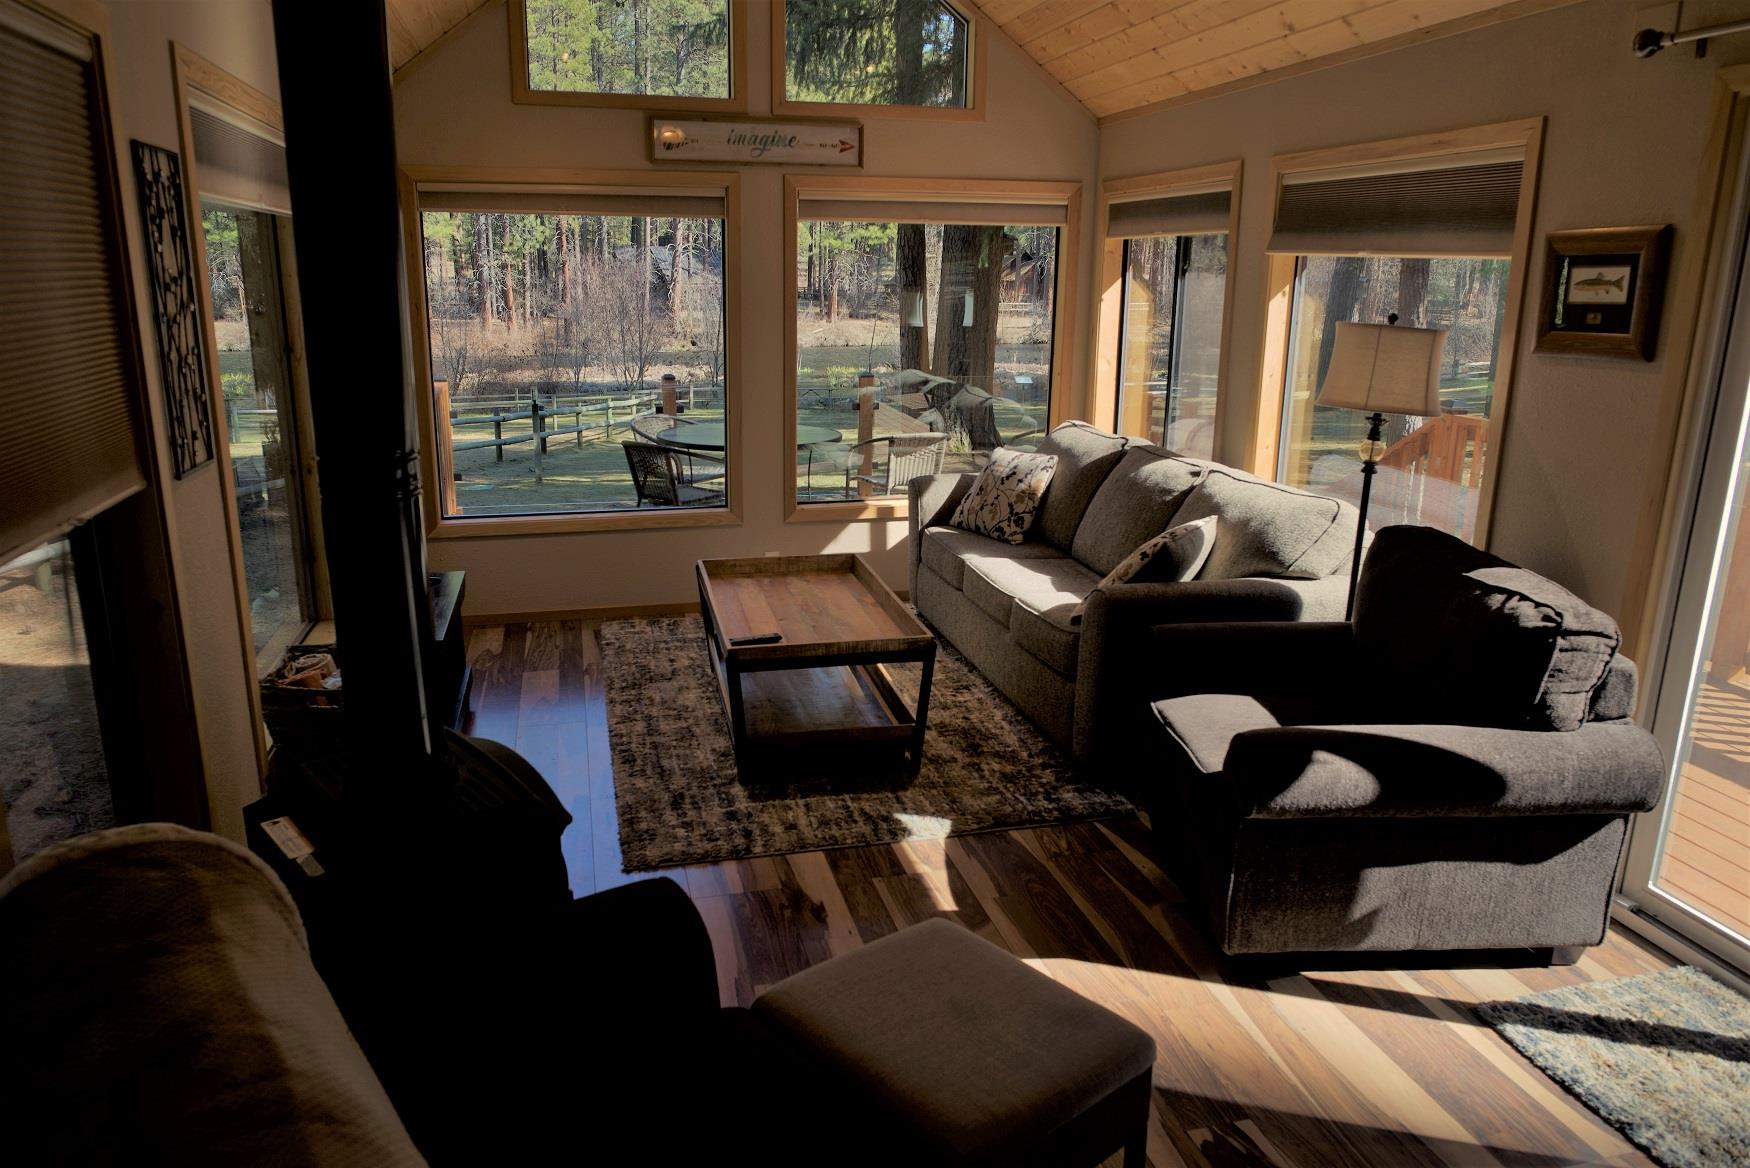 Curl up in front of the fire in the living room of Riverview Cabin, with a perfect view of the Metolius River out the gigantic windows, at Cold Springs Resort and RV Park in Camp Sherman, Oregon